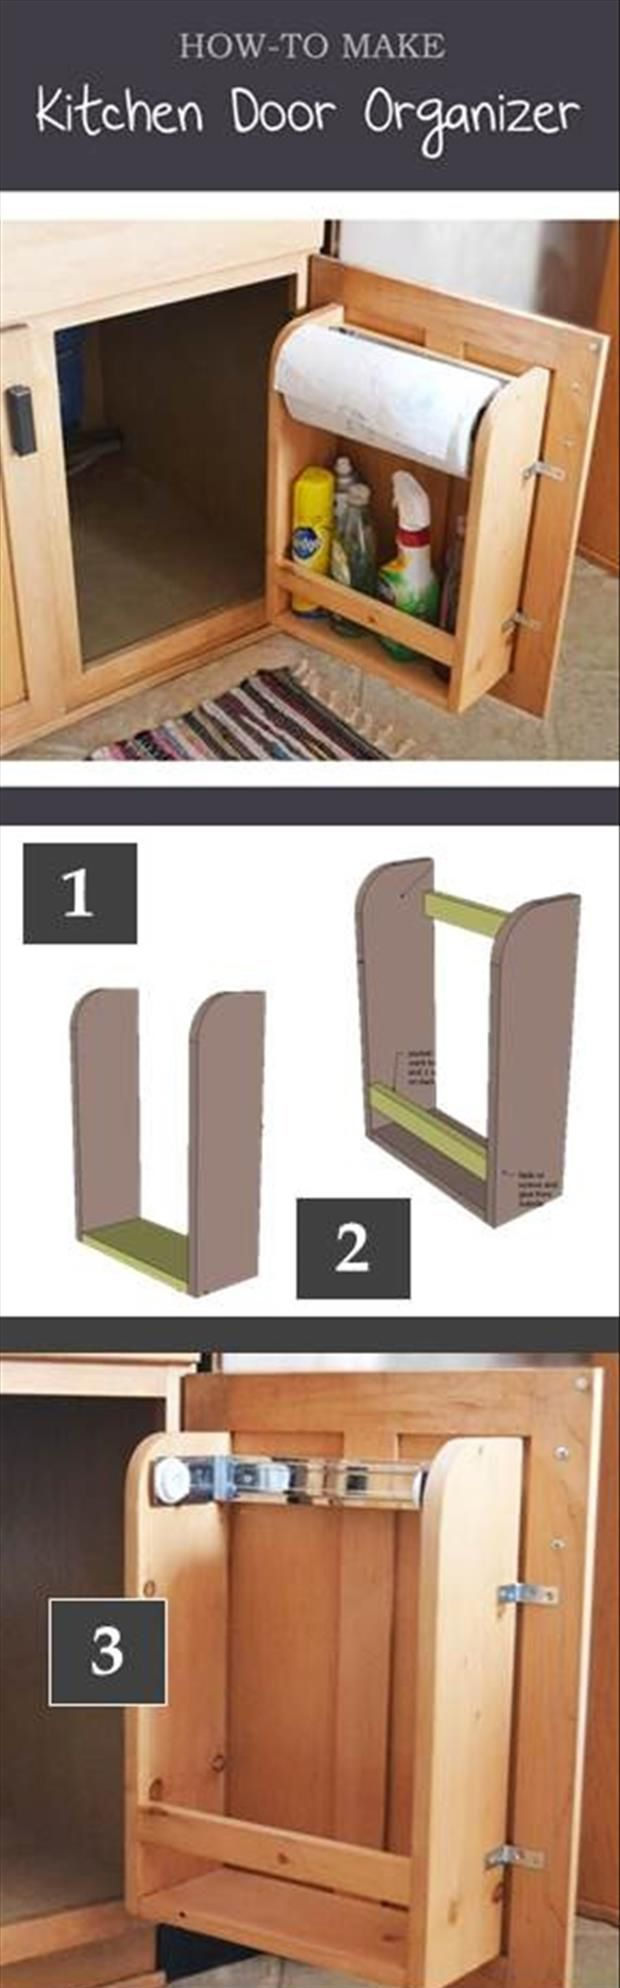 How To Make A Kitchen Cabinet Door Organizer With Paper Towel Holder For Less Than Ten Dollars How To Make A Kitchen Cabinet Door Organizer With Paper